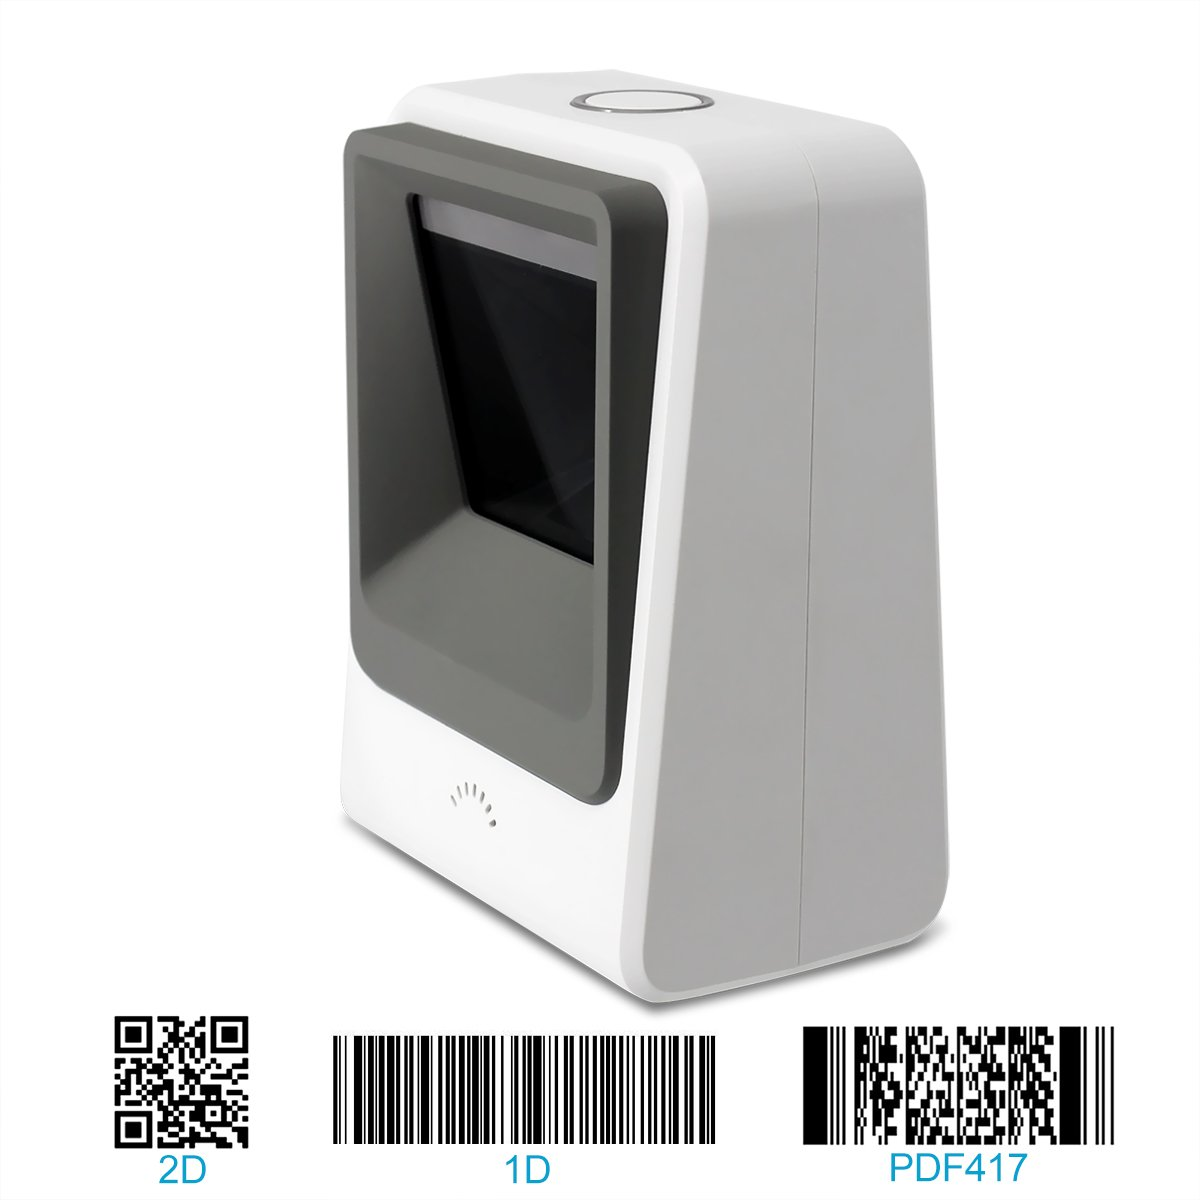 2D Barcode Scanner Omnidirectional Hands-Free Automatic Bar Code Readers, 1D 2D Barcode Scanner QR PDF417 Data Matrix UPC Rechargeable Bar Code Scanner for Laptops/PC/Android/Apple iOS BarcodeScanner.